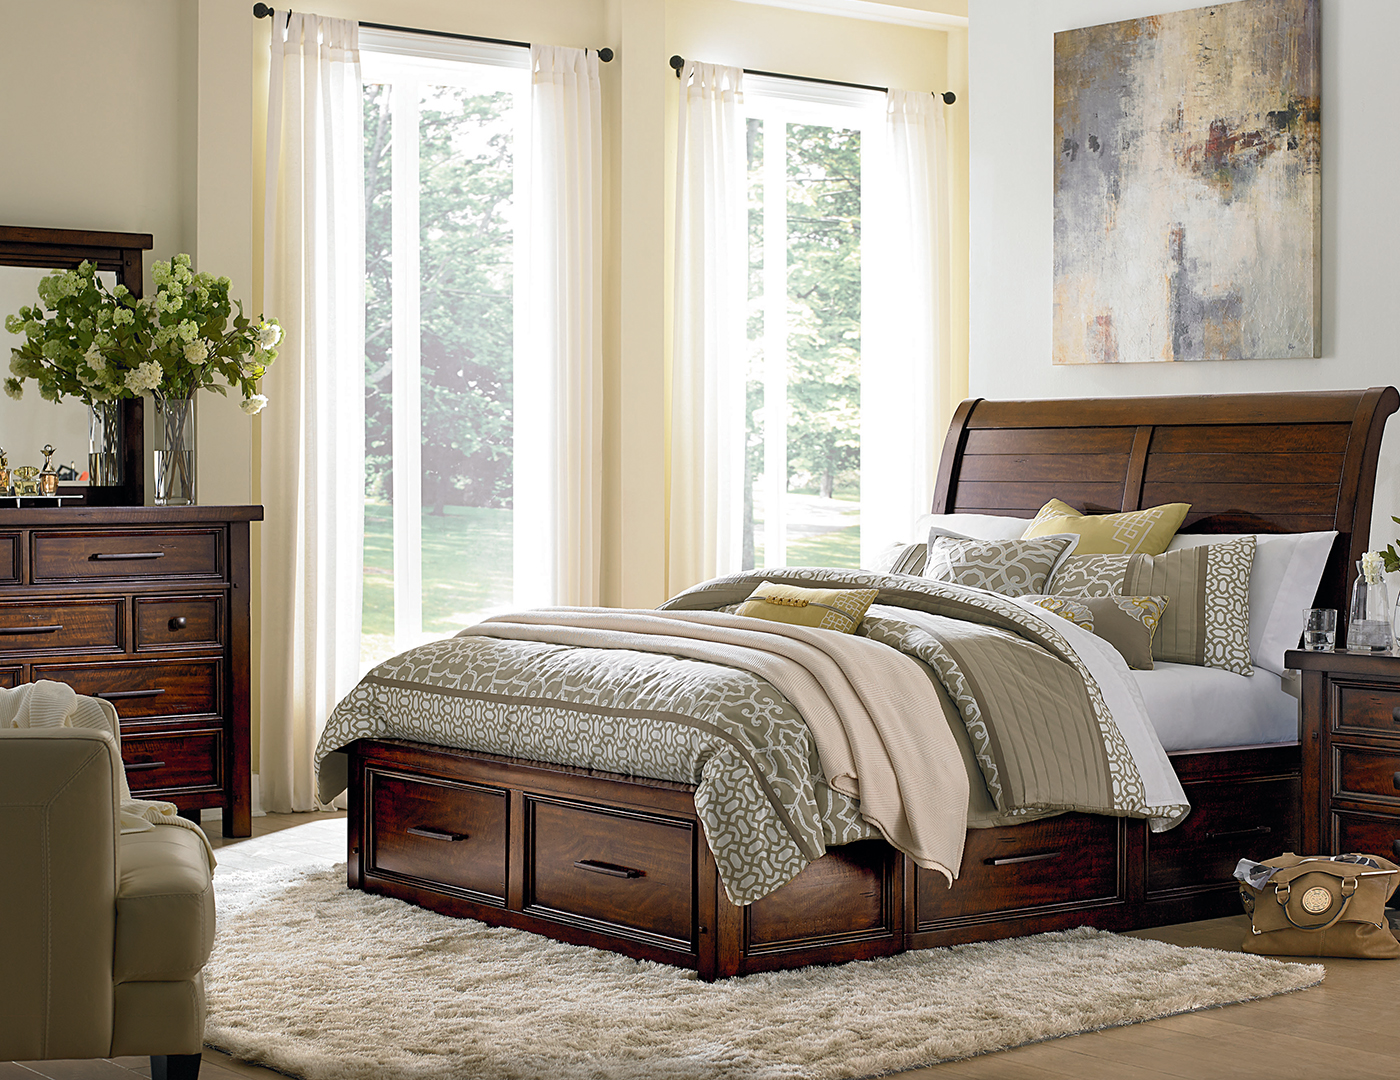 bedroom headboard ls